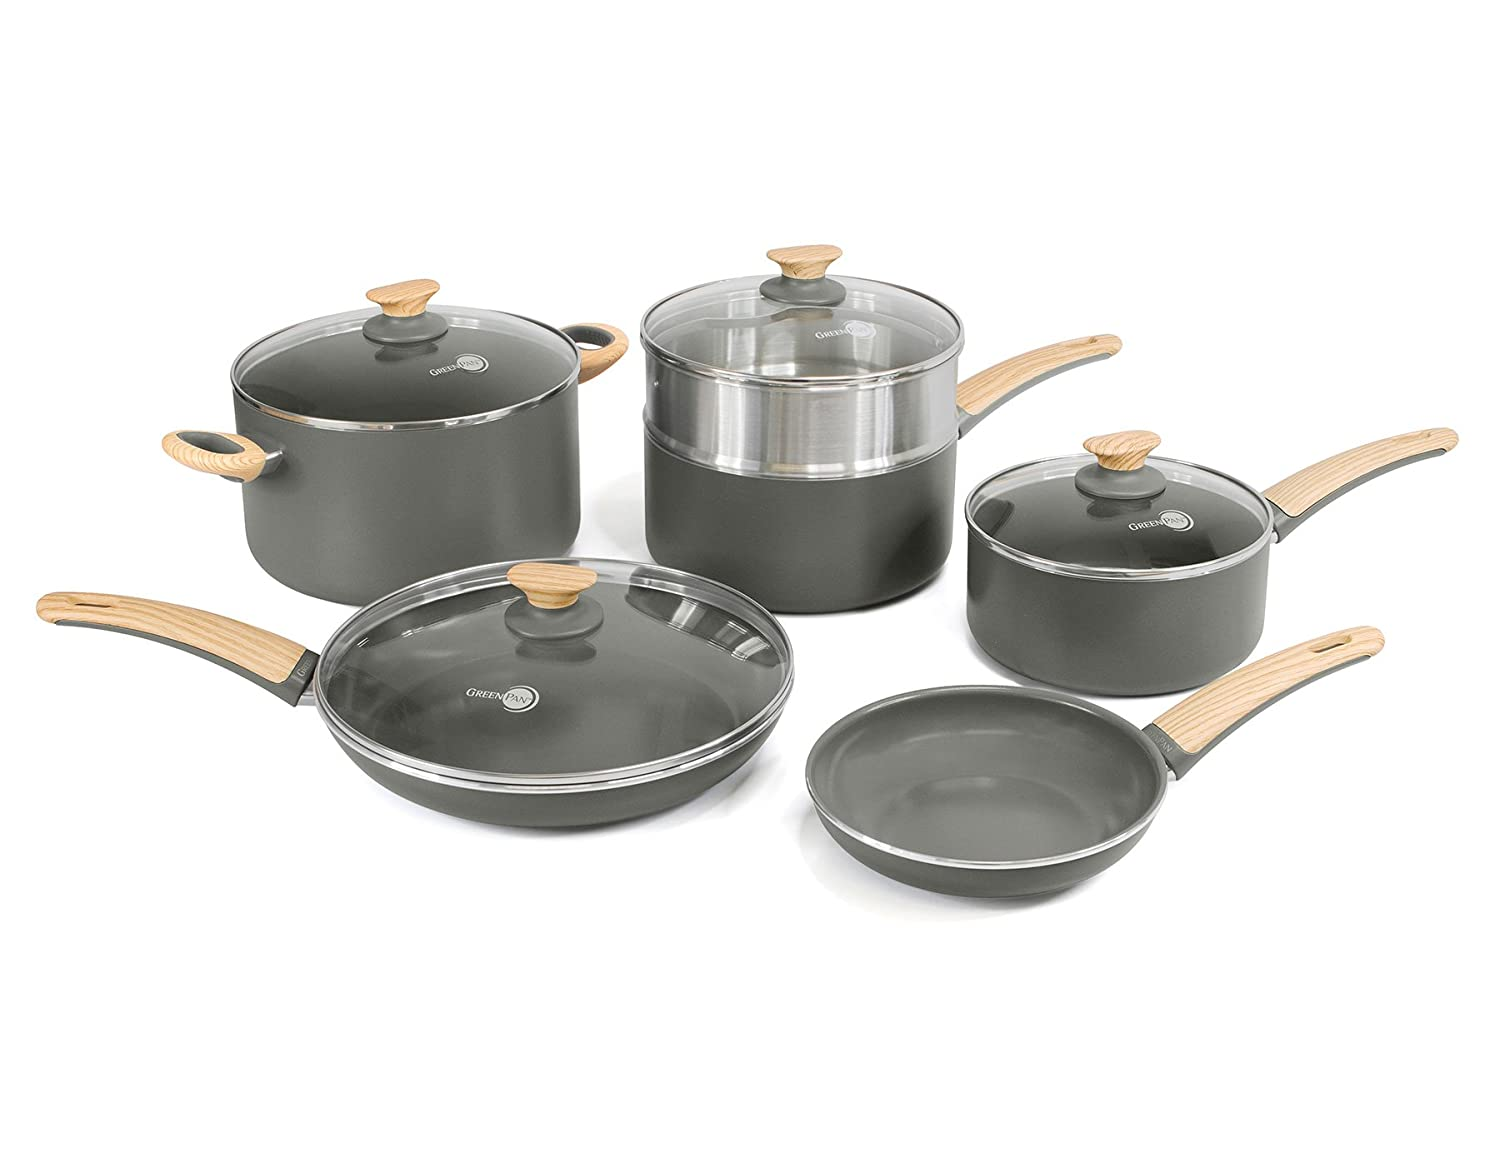 GreenPan Wood-Be 10 Piece Aluminum Ceramic Non-Stick Cookware Set